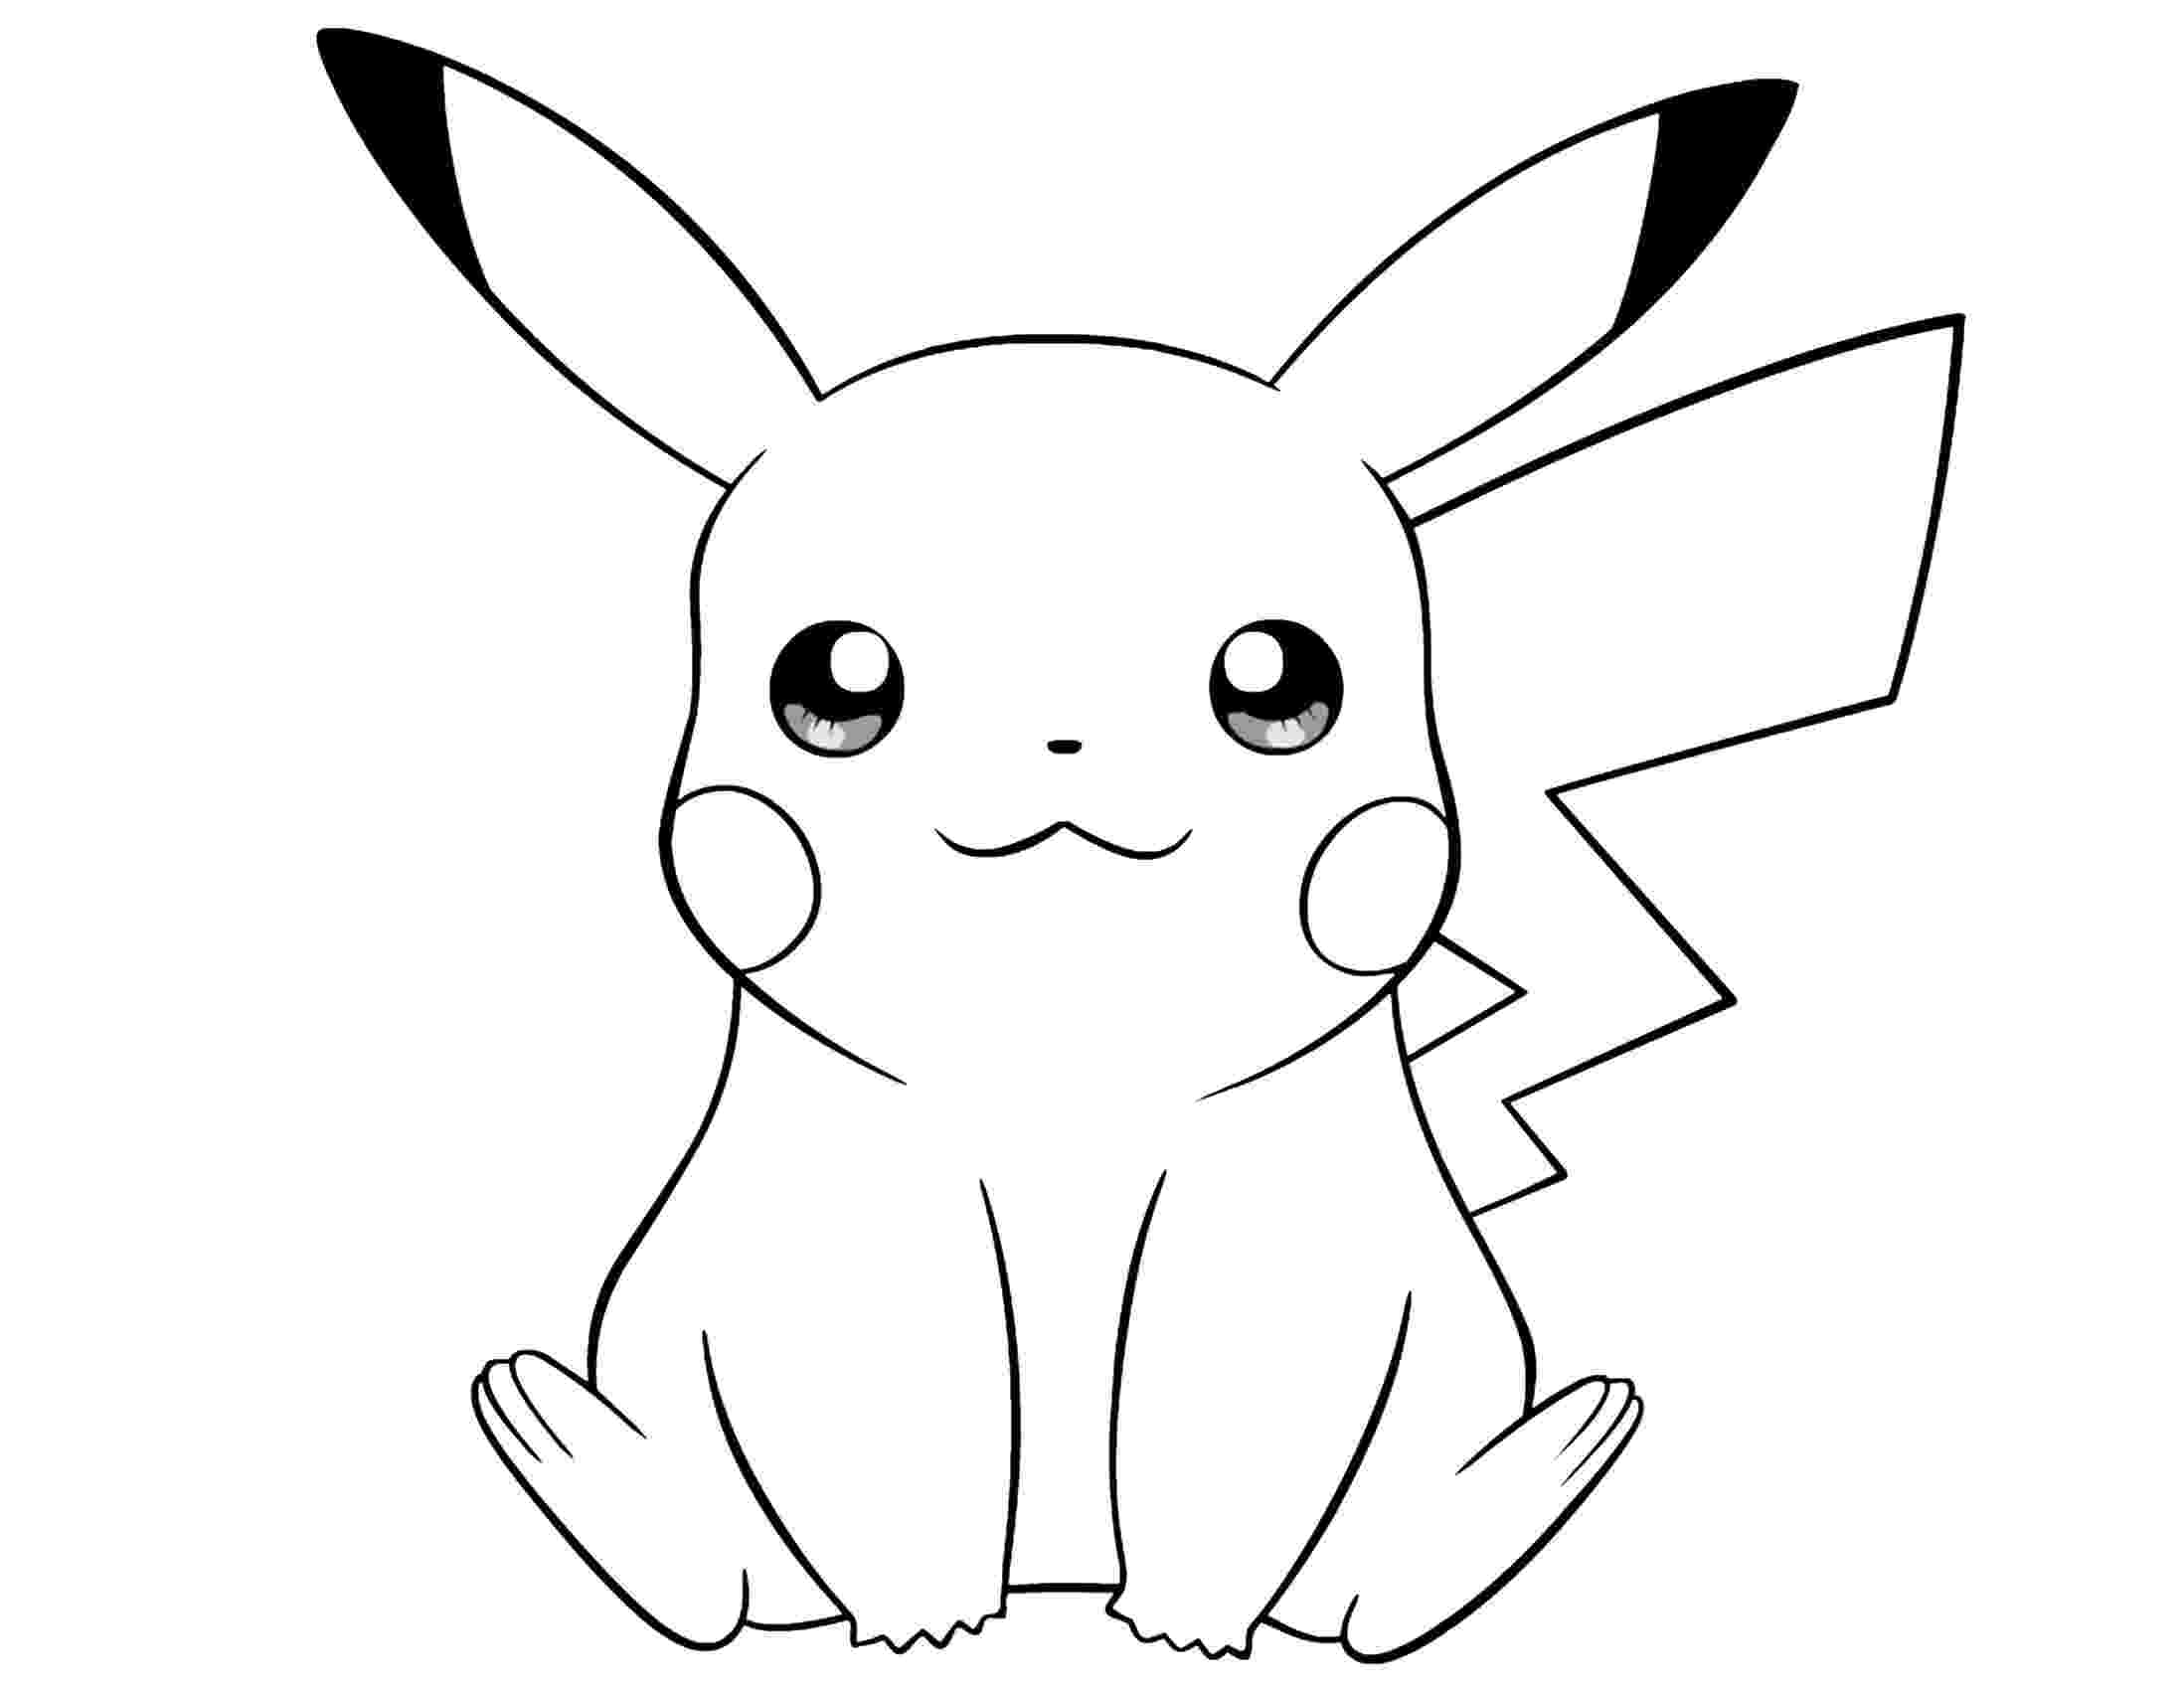 pikachu coloring sheets printable pikachu coloring pages for kids cool2bkids sheets pikachu coloring